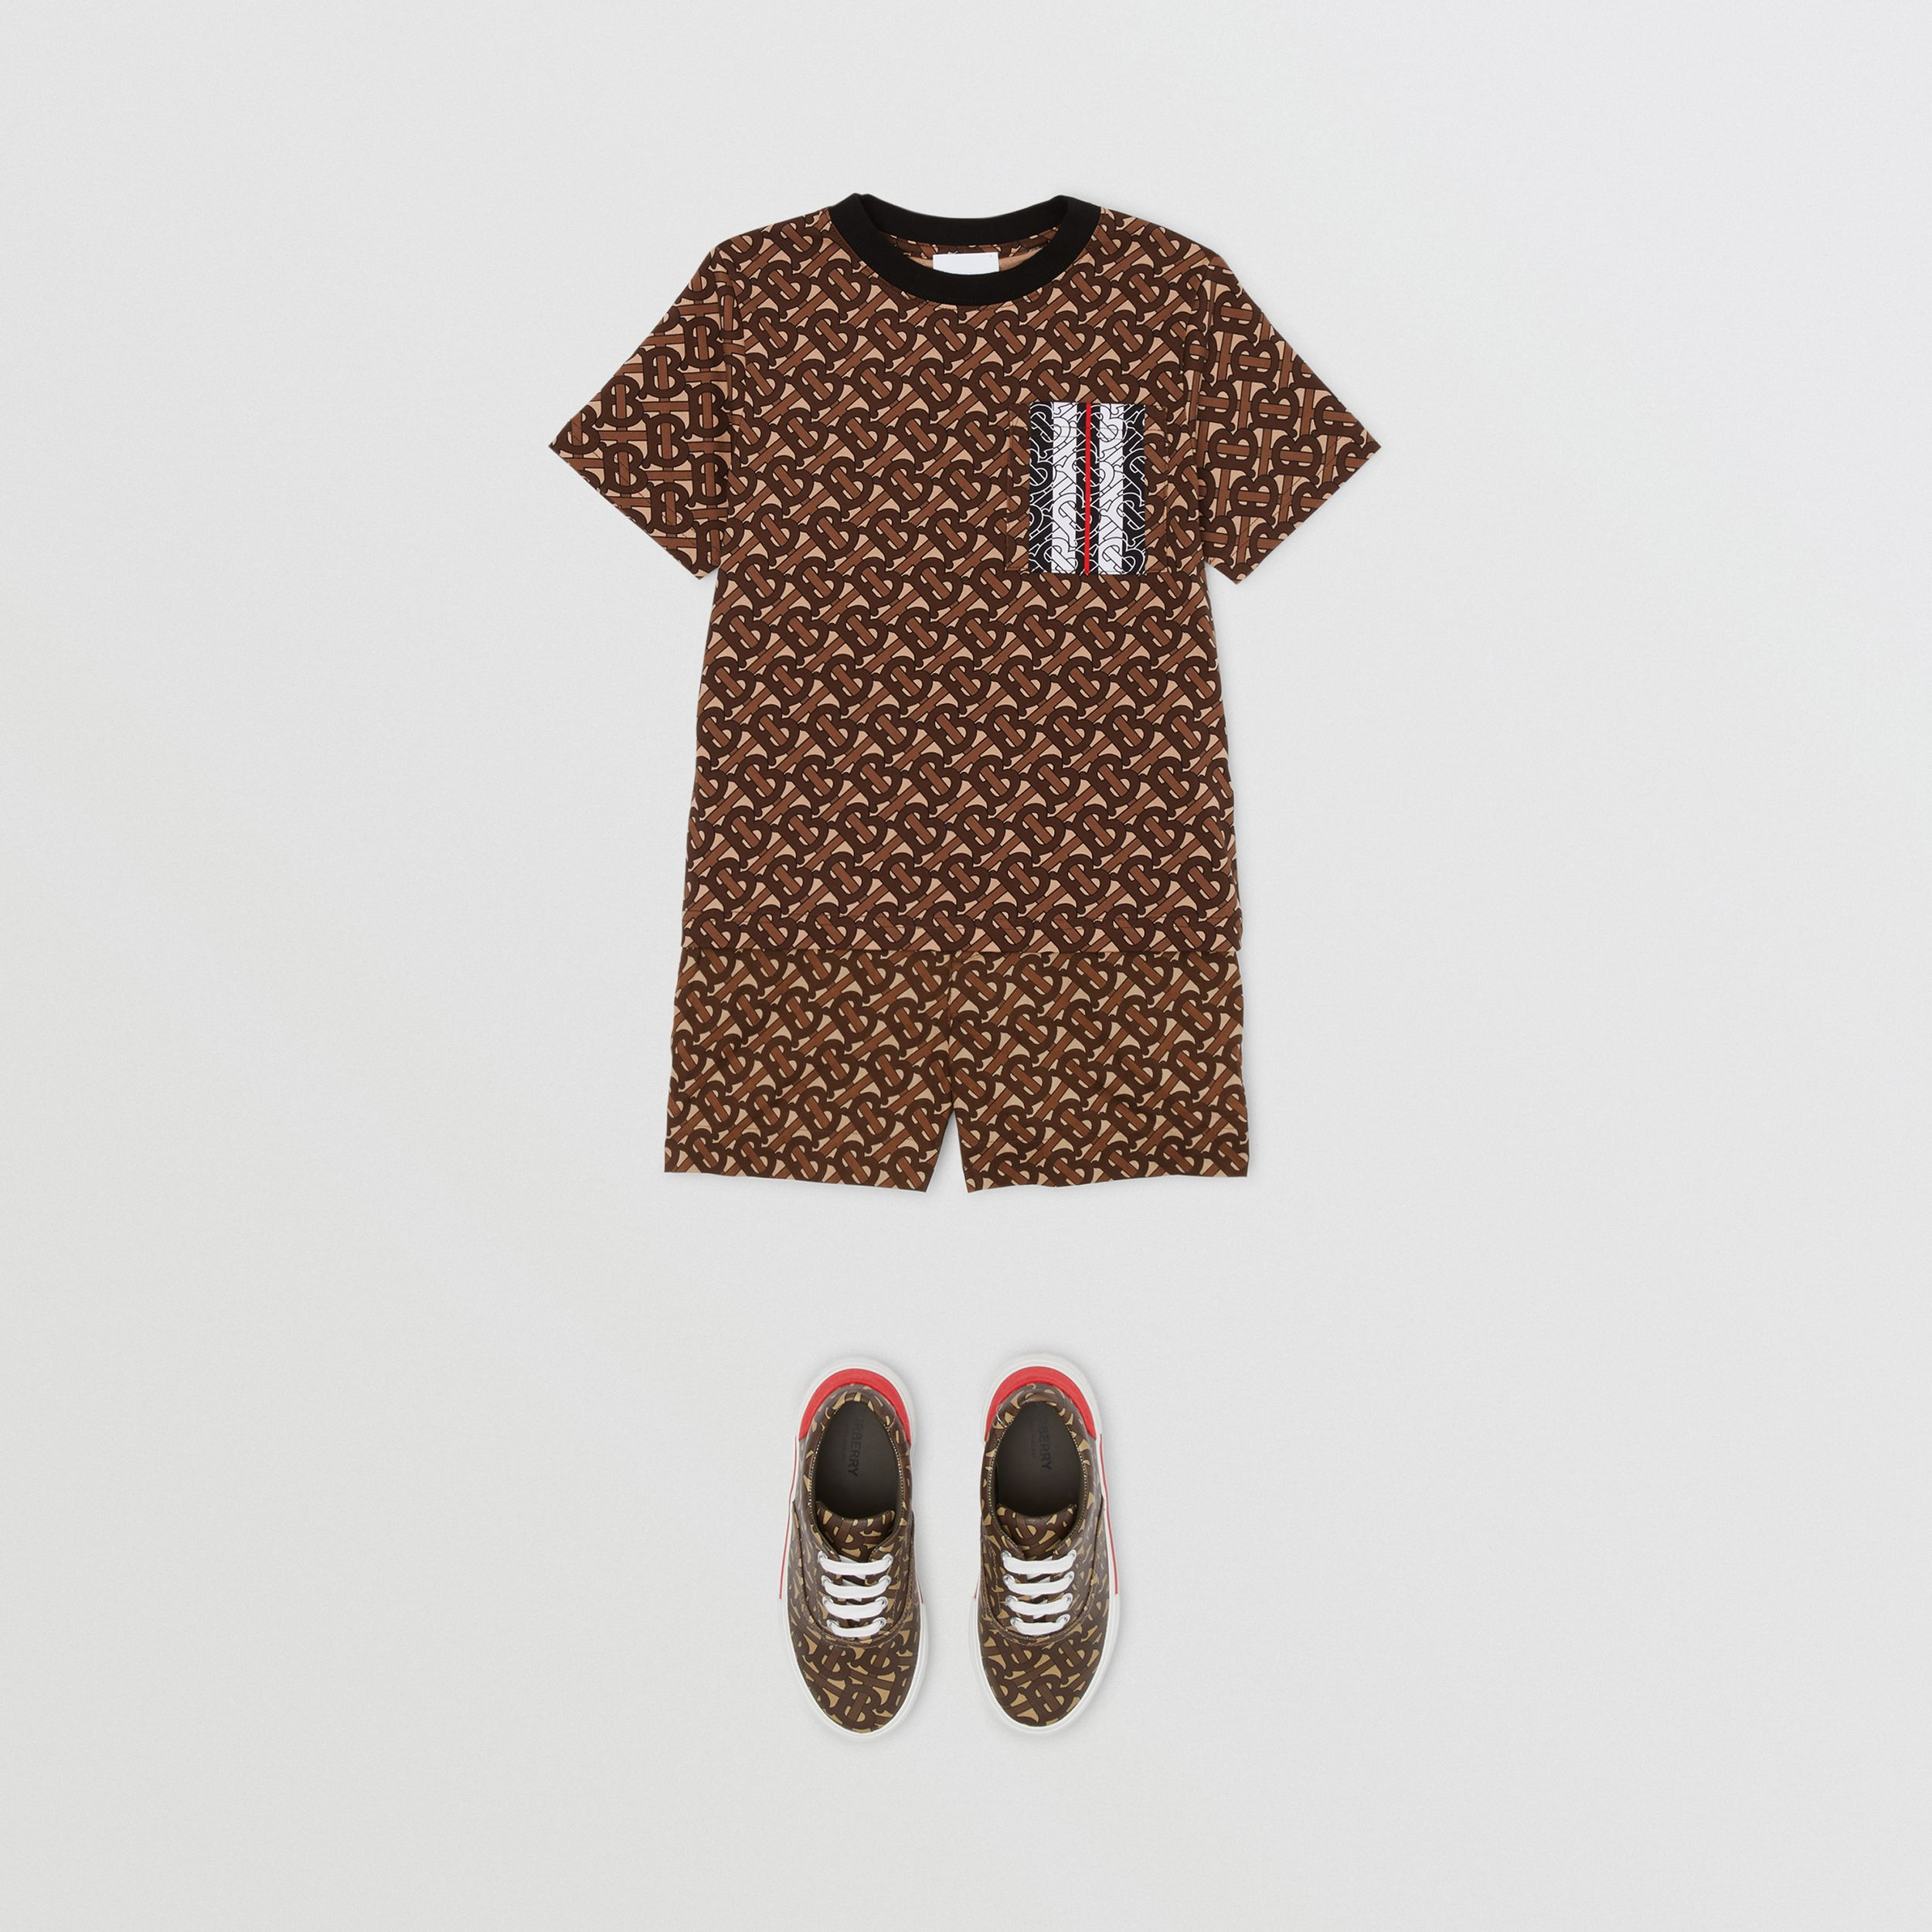 Monogram Stripe Print Cotton T-shirt in Bridle Brown | Burberry United Kingdom - 4